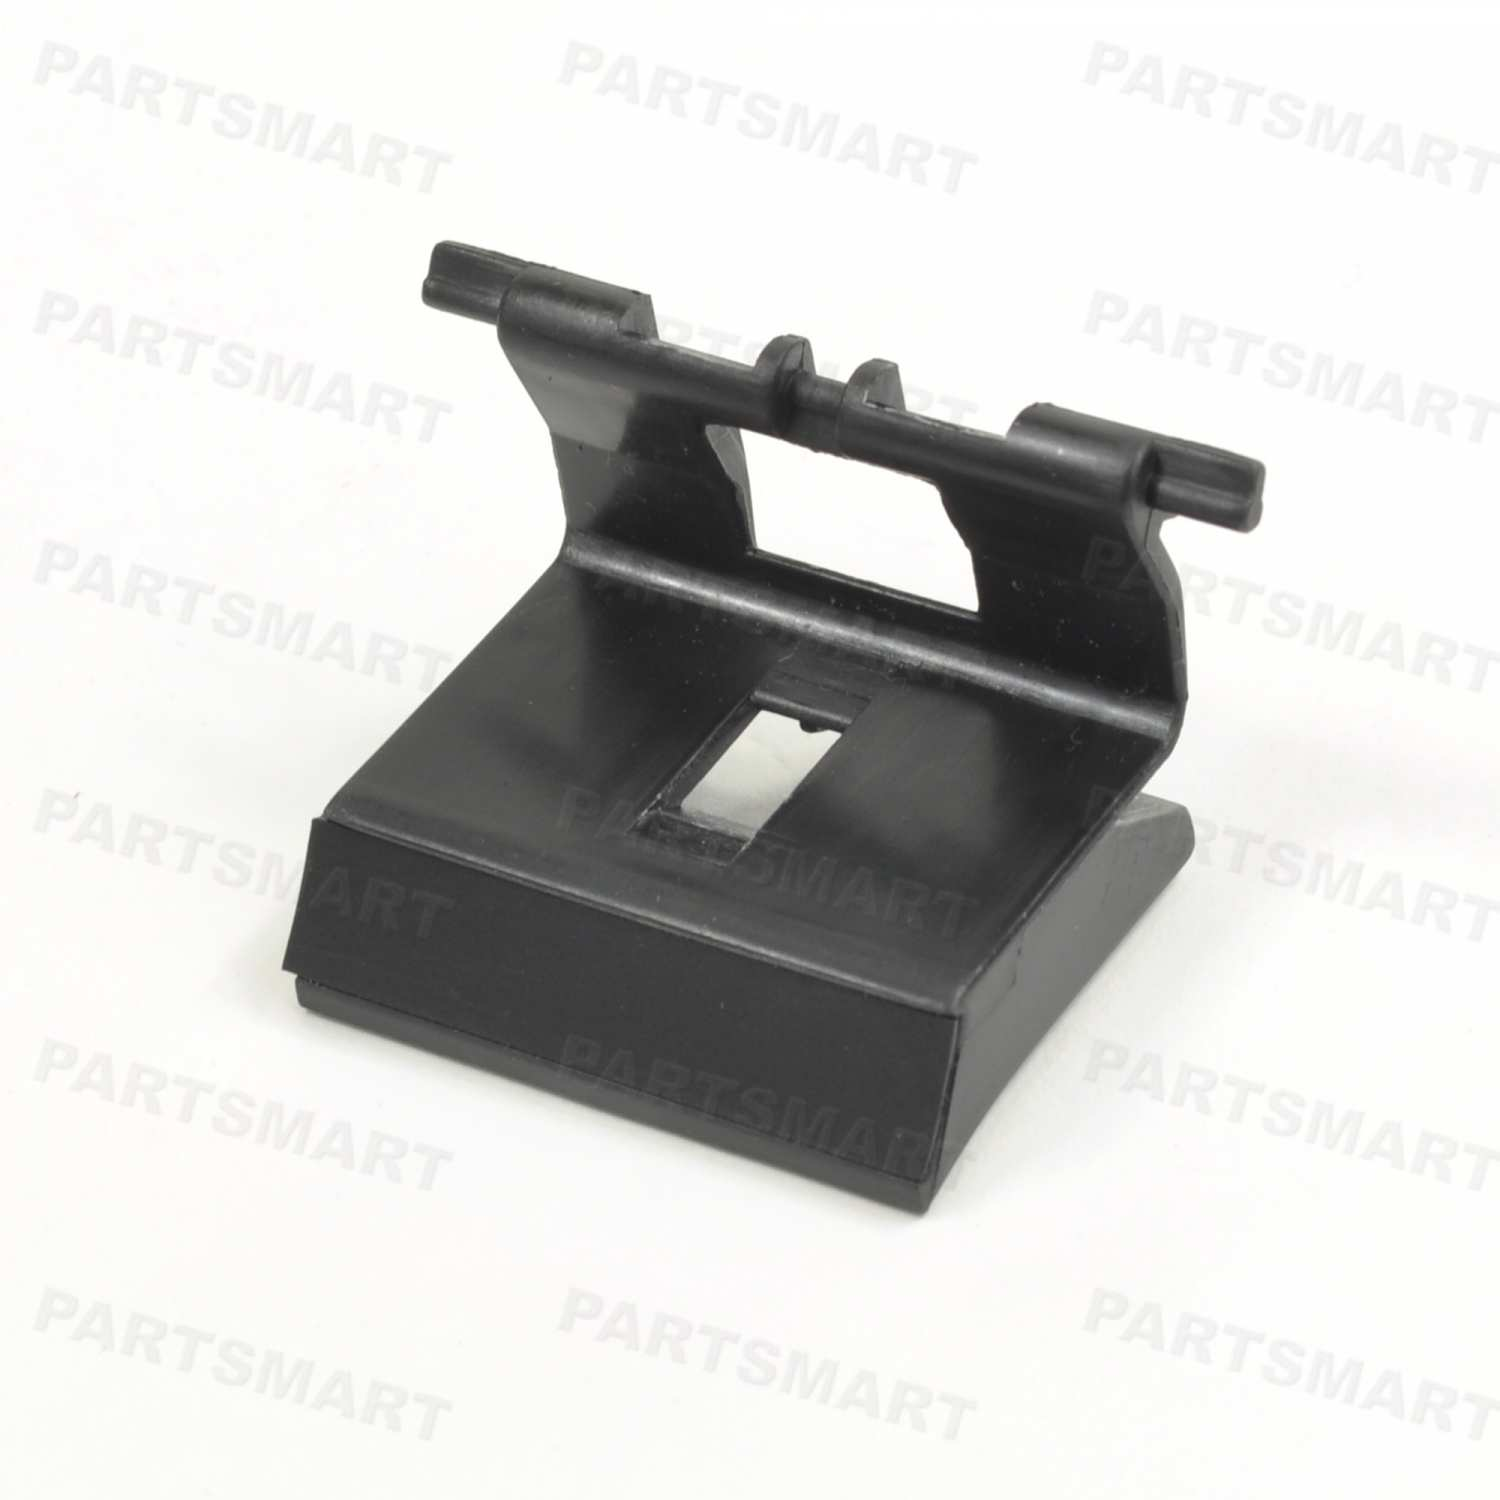 RM1-4006-PAD Separation Pad for HP LaserJet P1005, LaserJet P1008